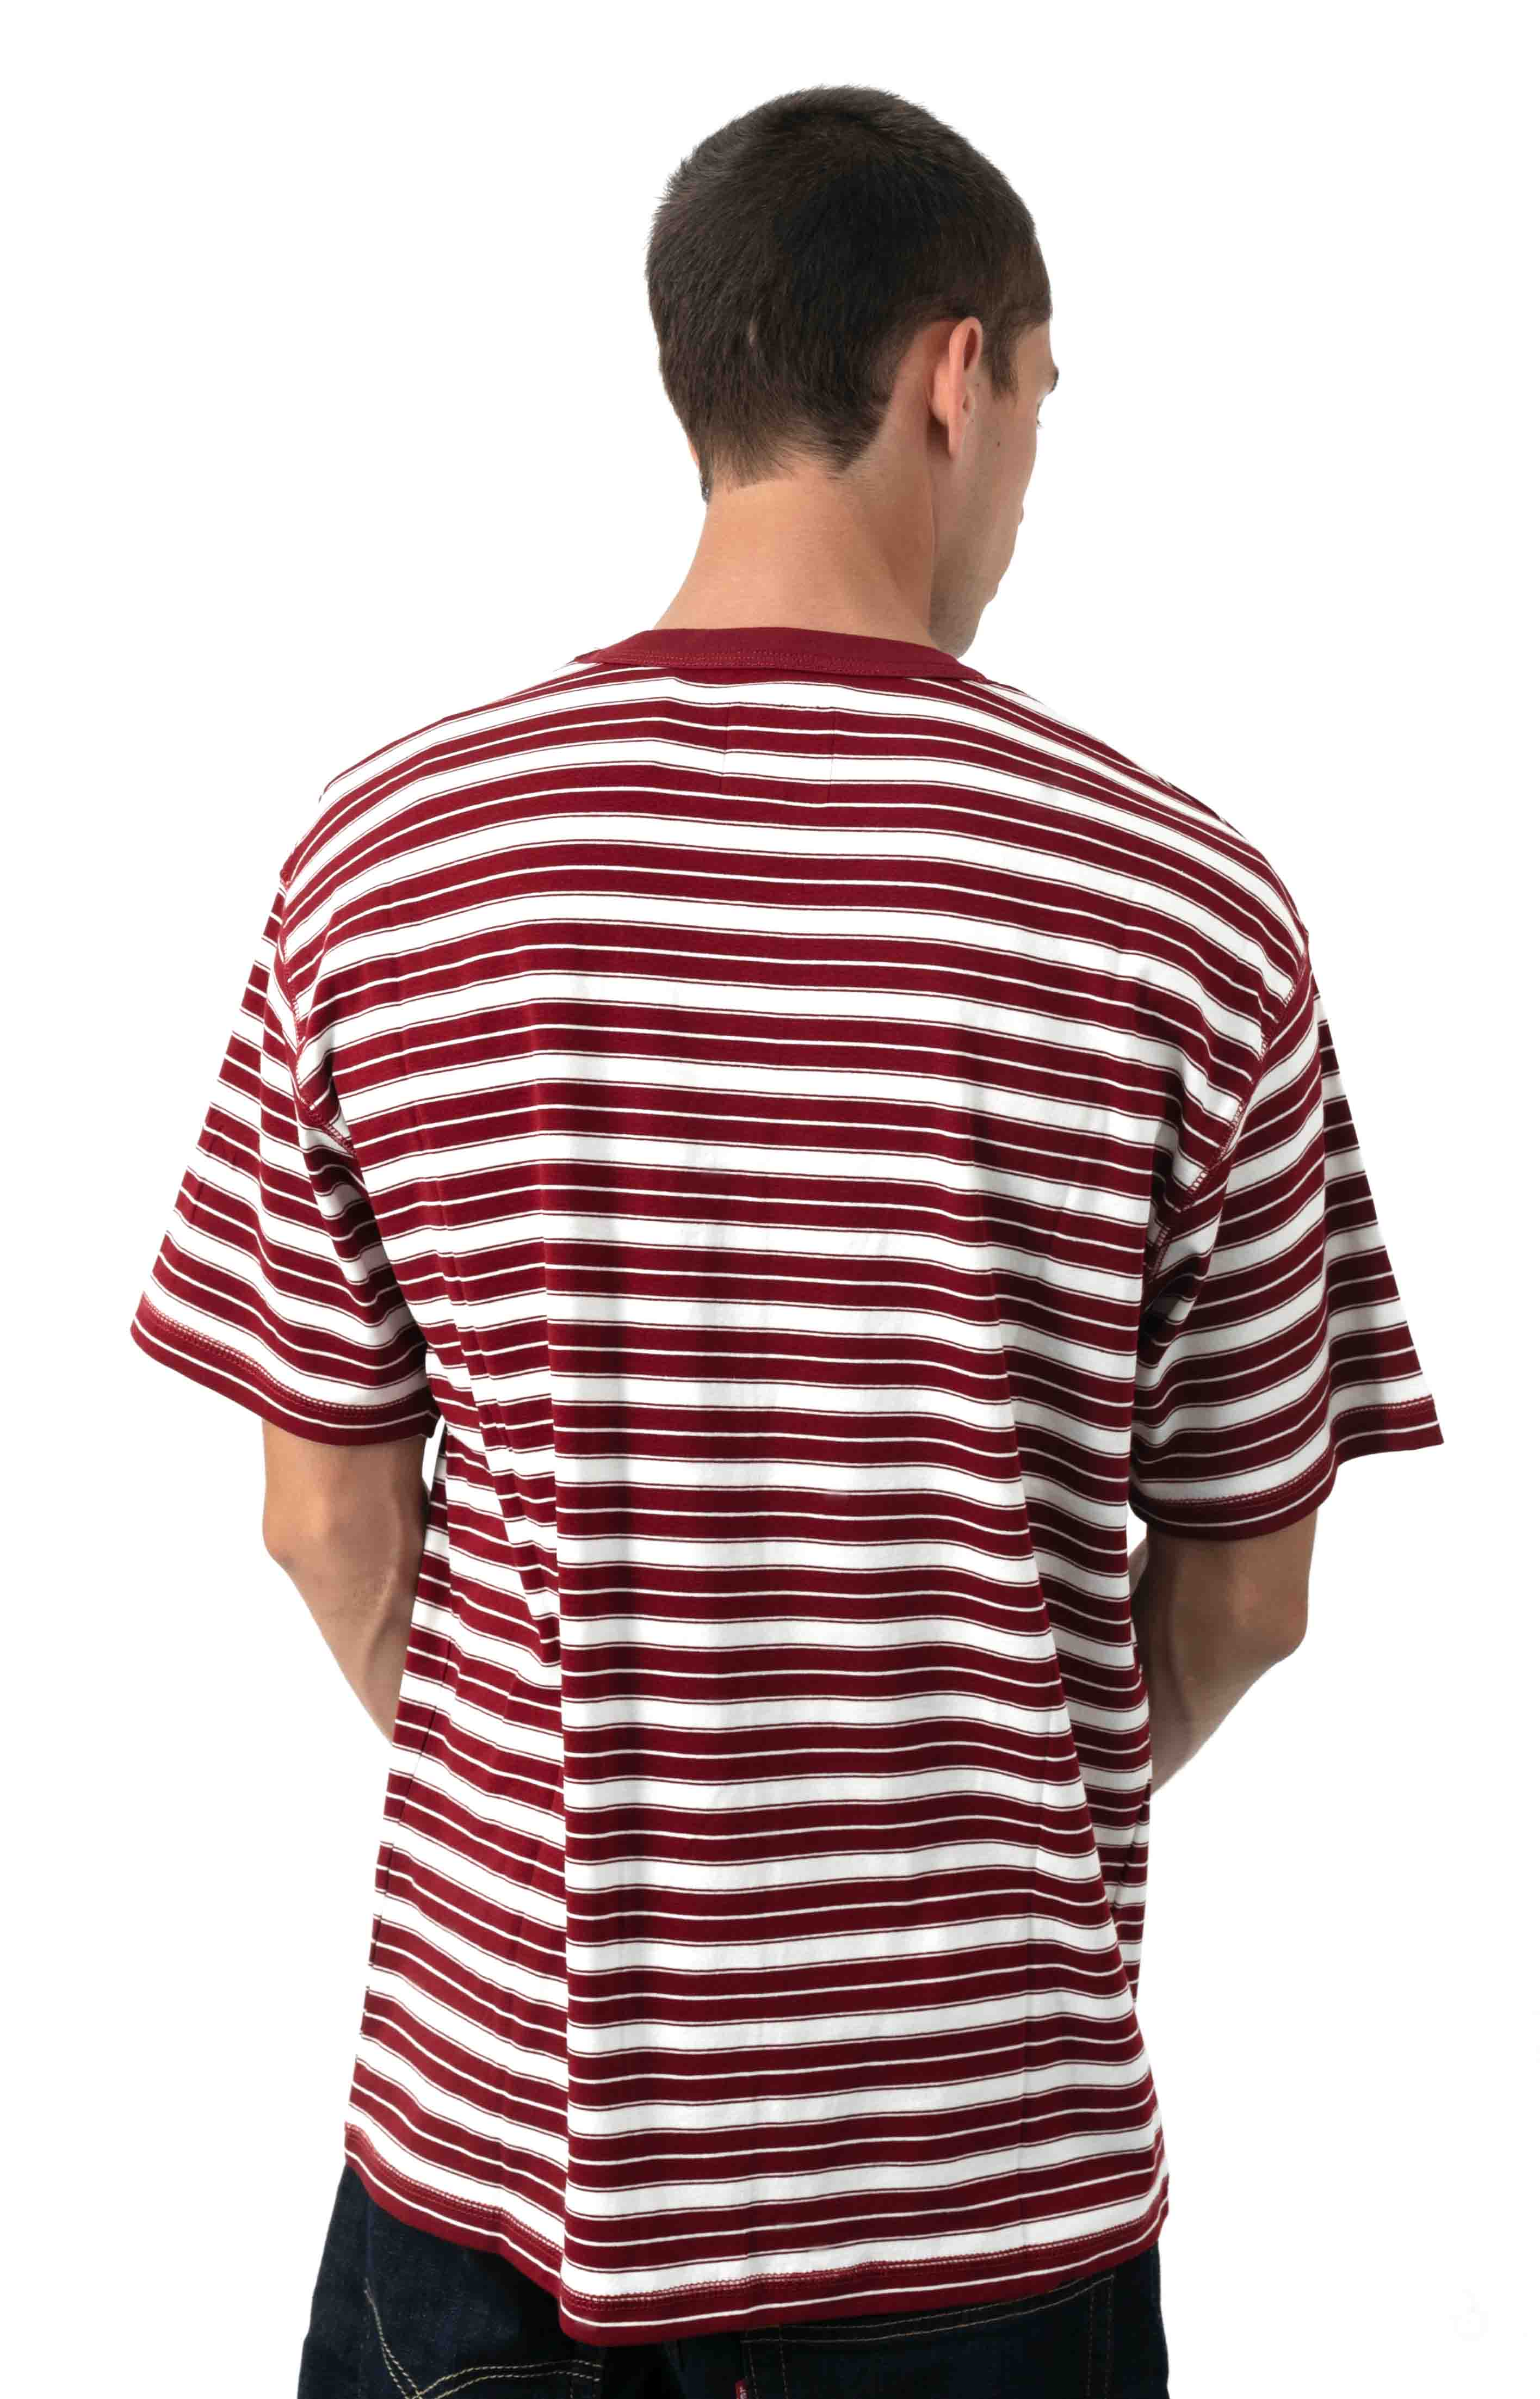 O-Dog T-Shirt - Burgundy 3